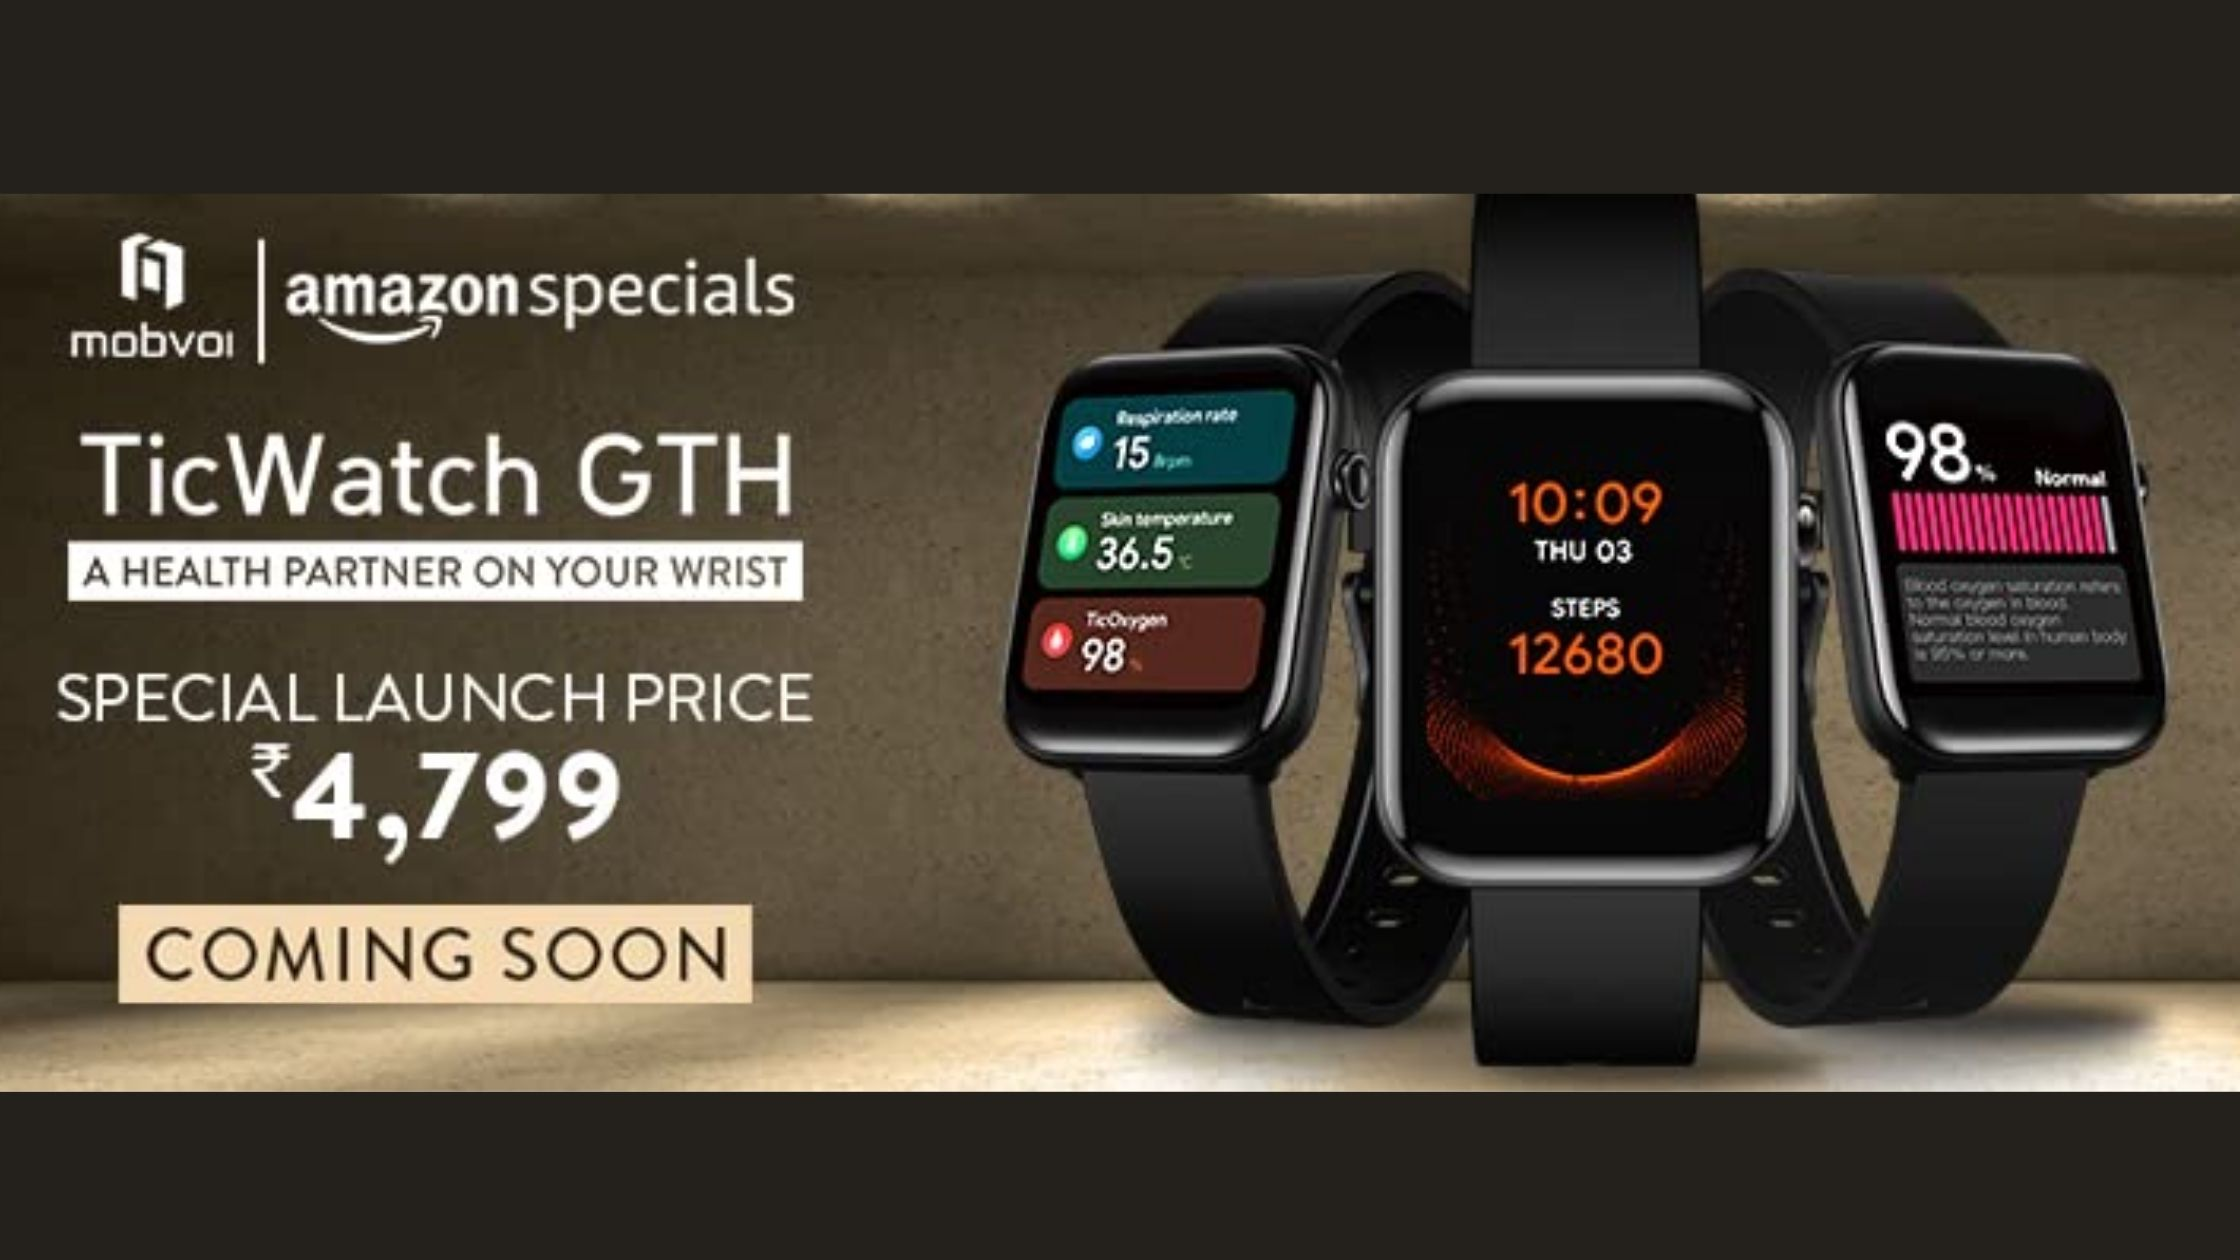 TicWatch GTH price in India